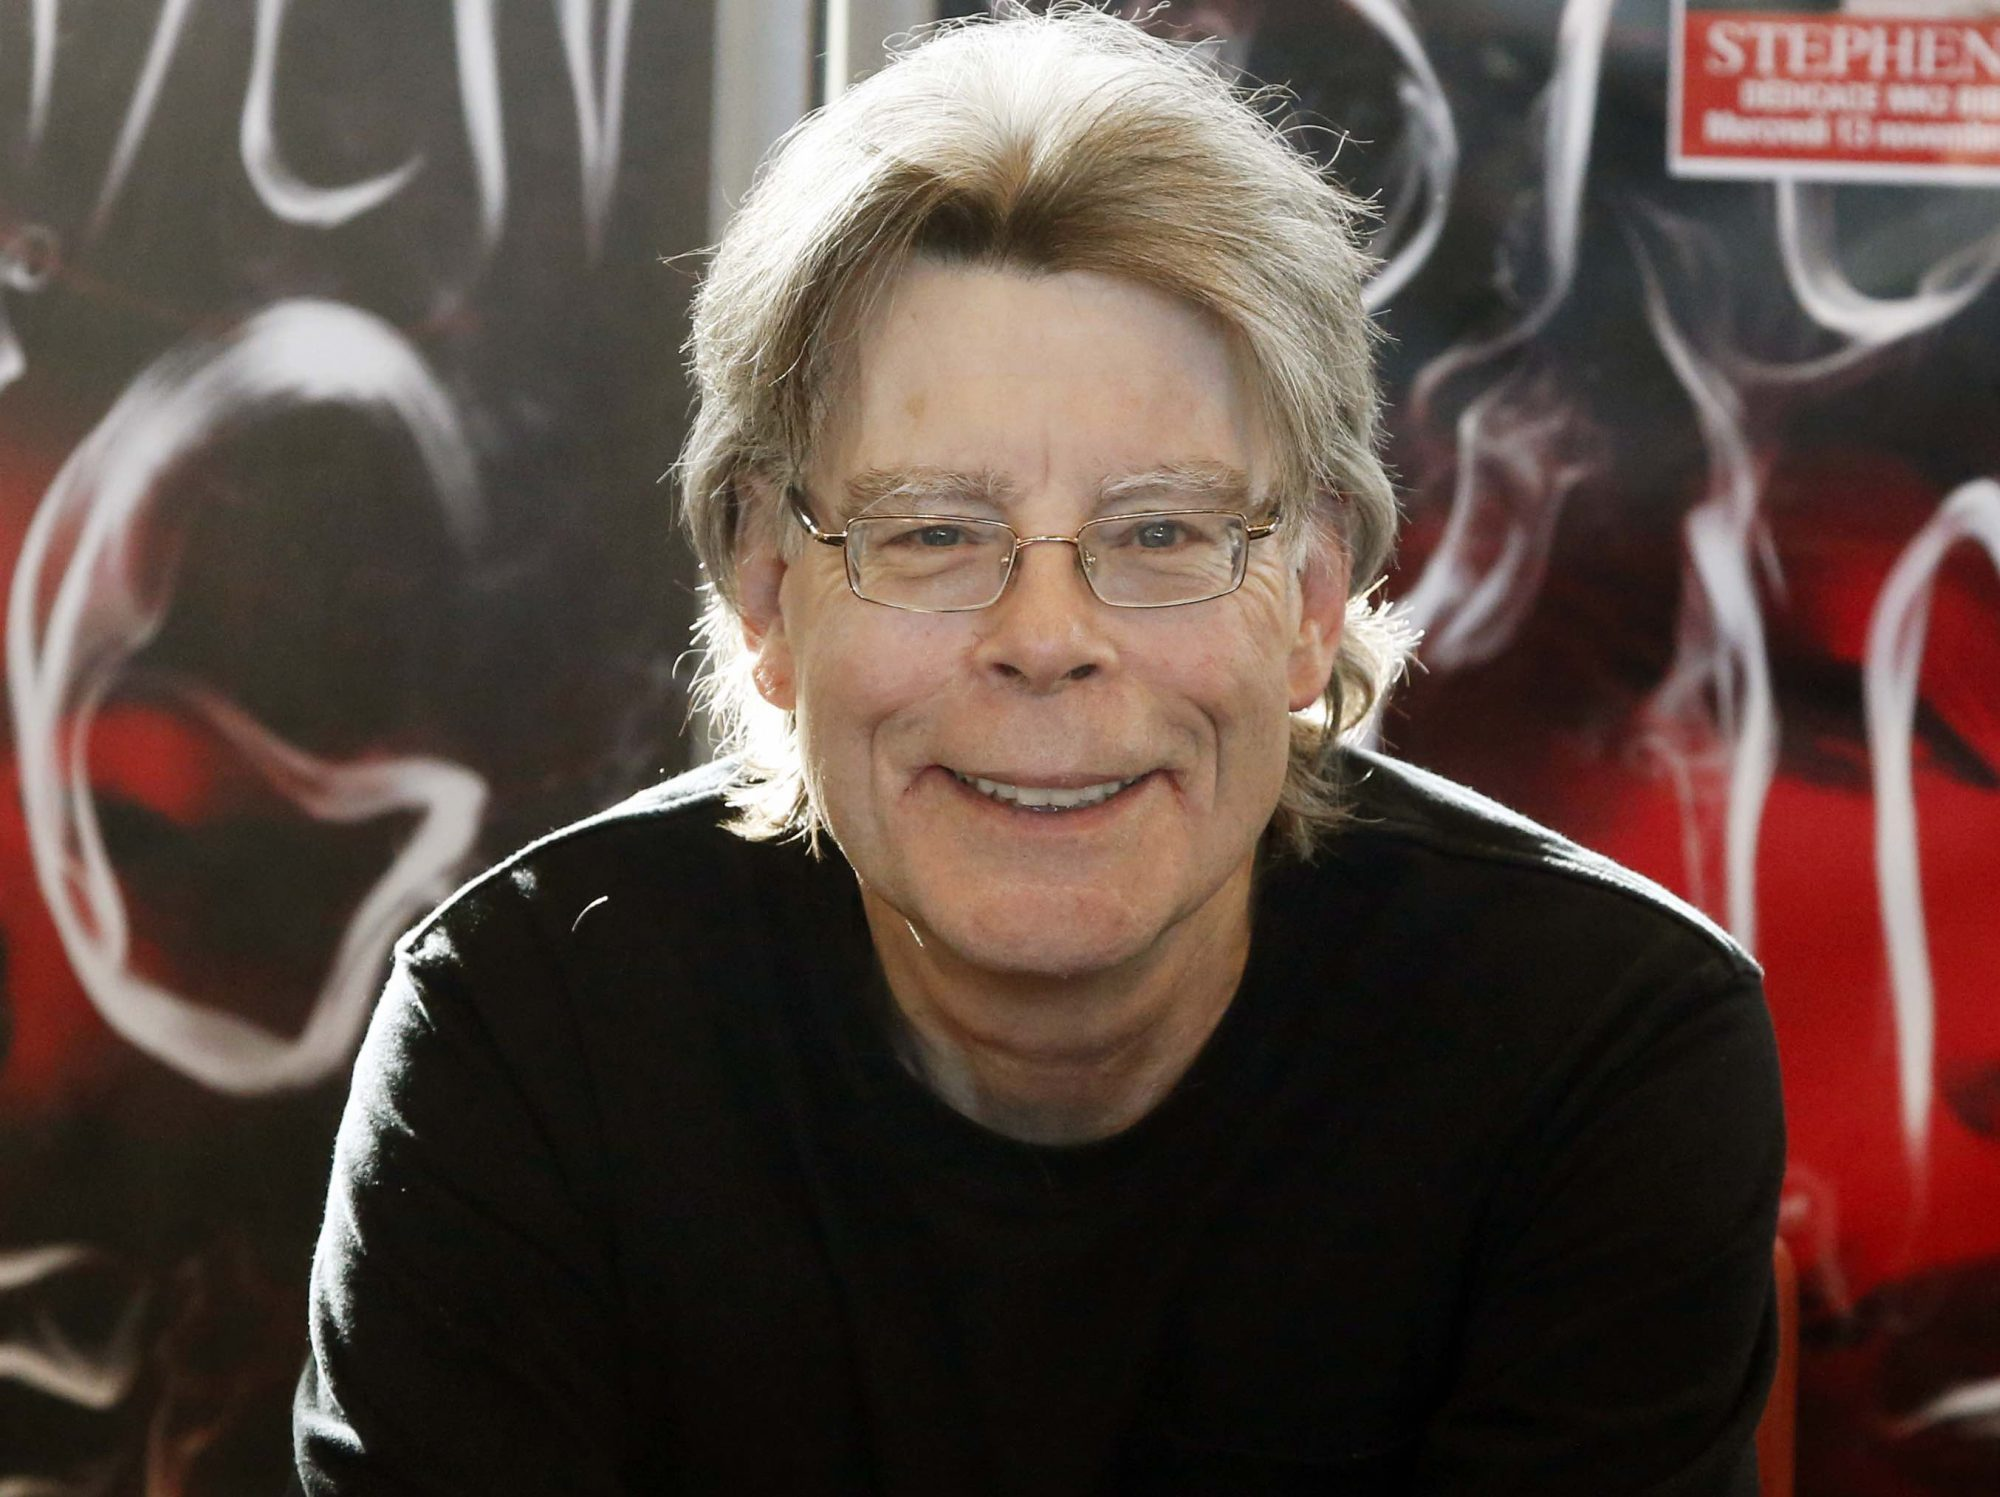 Want to live at Stephen King's house in Maine? Now you can